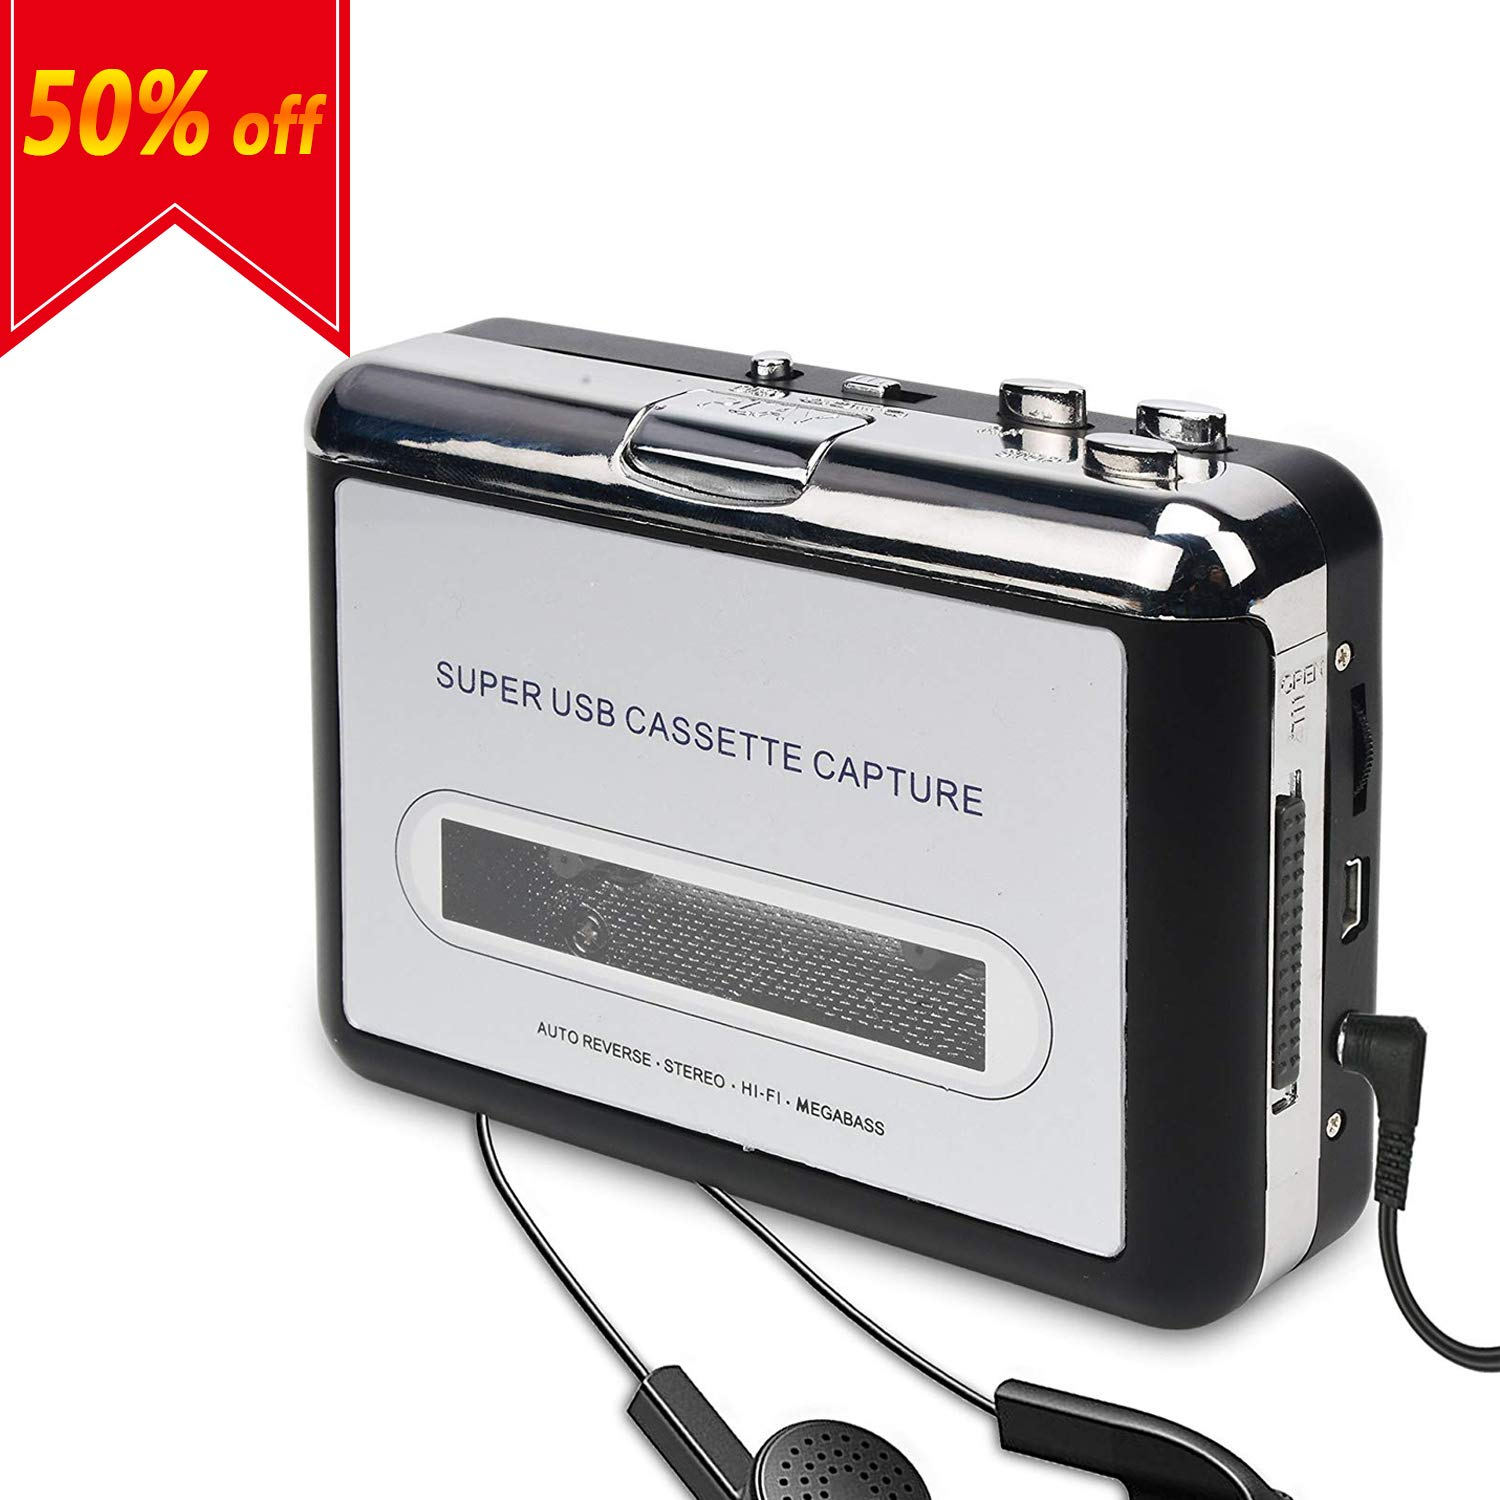 DIGITNOW Cassette Player-Cassette Tape to MP3 CD Converter Via USB,Portable Cassette Tape Converter Captures MP3 Audio Music,Convert Walkman Tape Cassette to MP3 Format, Compatible with Laptop and PC BR602-CA